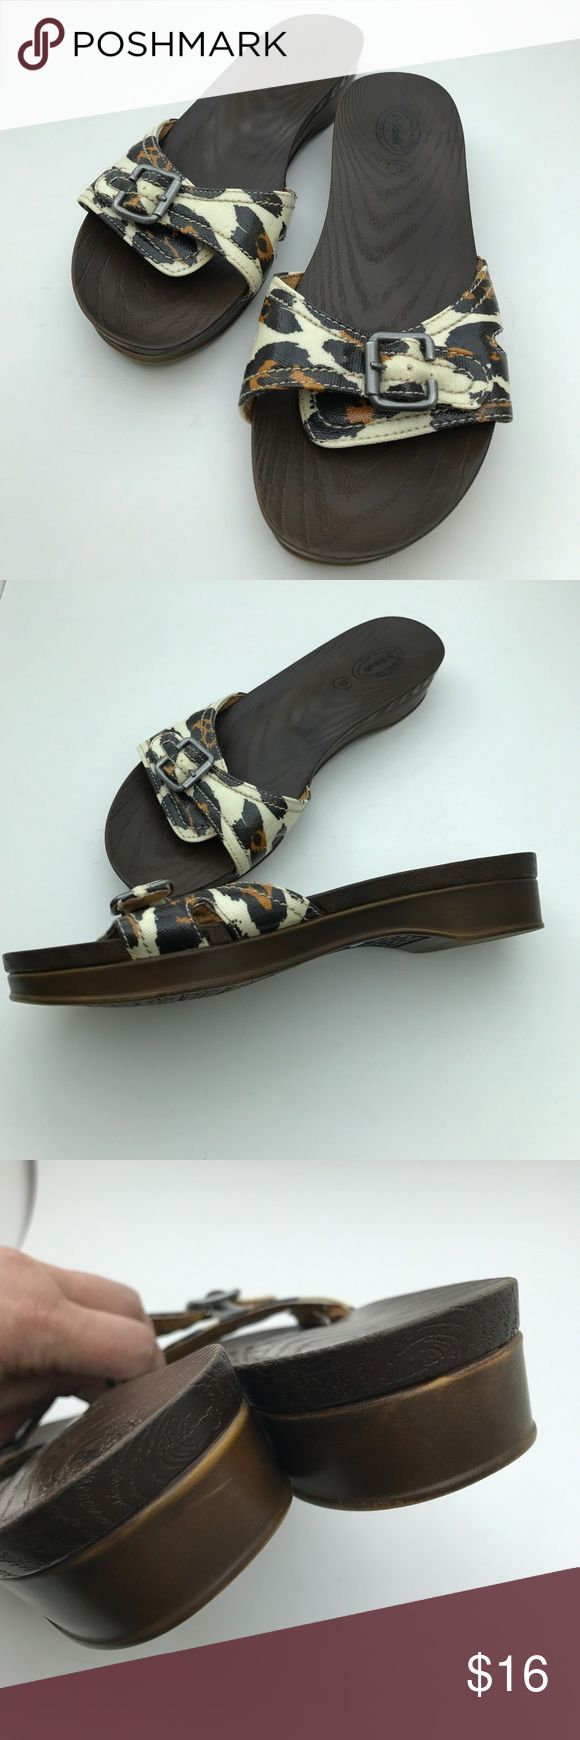 "Dr. Scholl's Leopard Print Sandals Oh yeah....the more ""leopardy"" the better! Fun sandals, all man made, size 8, have been worn - still in good shape. I offer 15% off bundles - make your shipping cost worth your while!  T1 Dr. Scholl's Shoes Sandals"